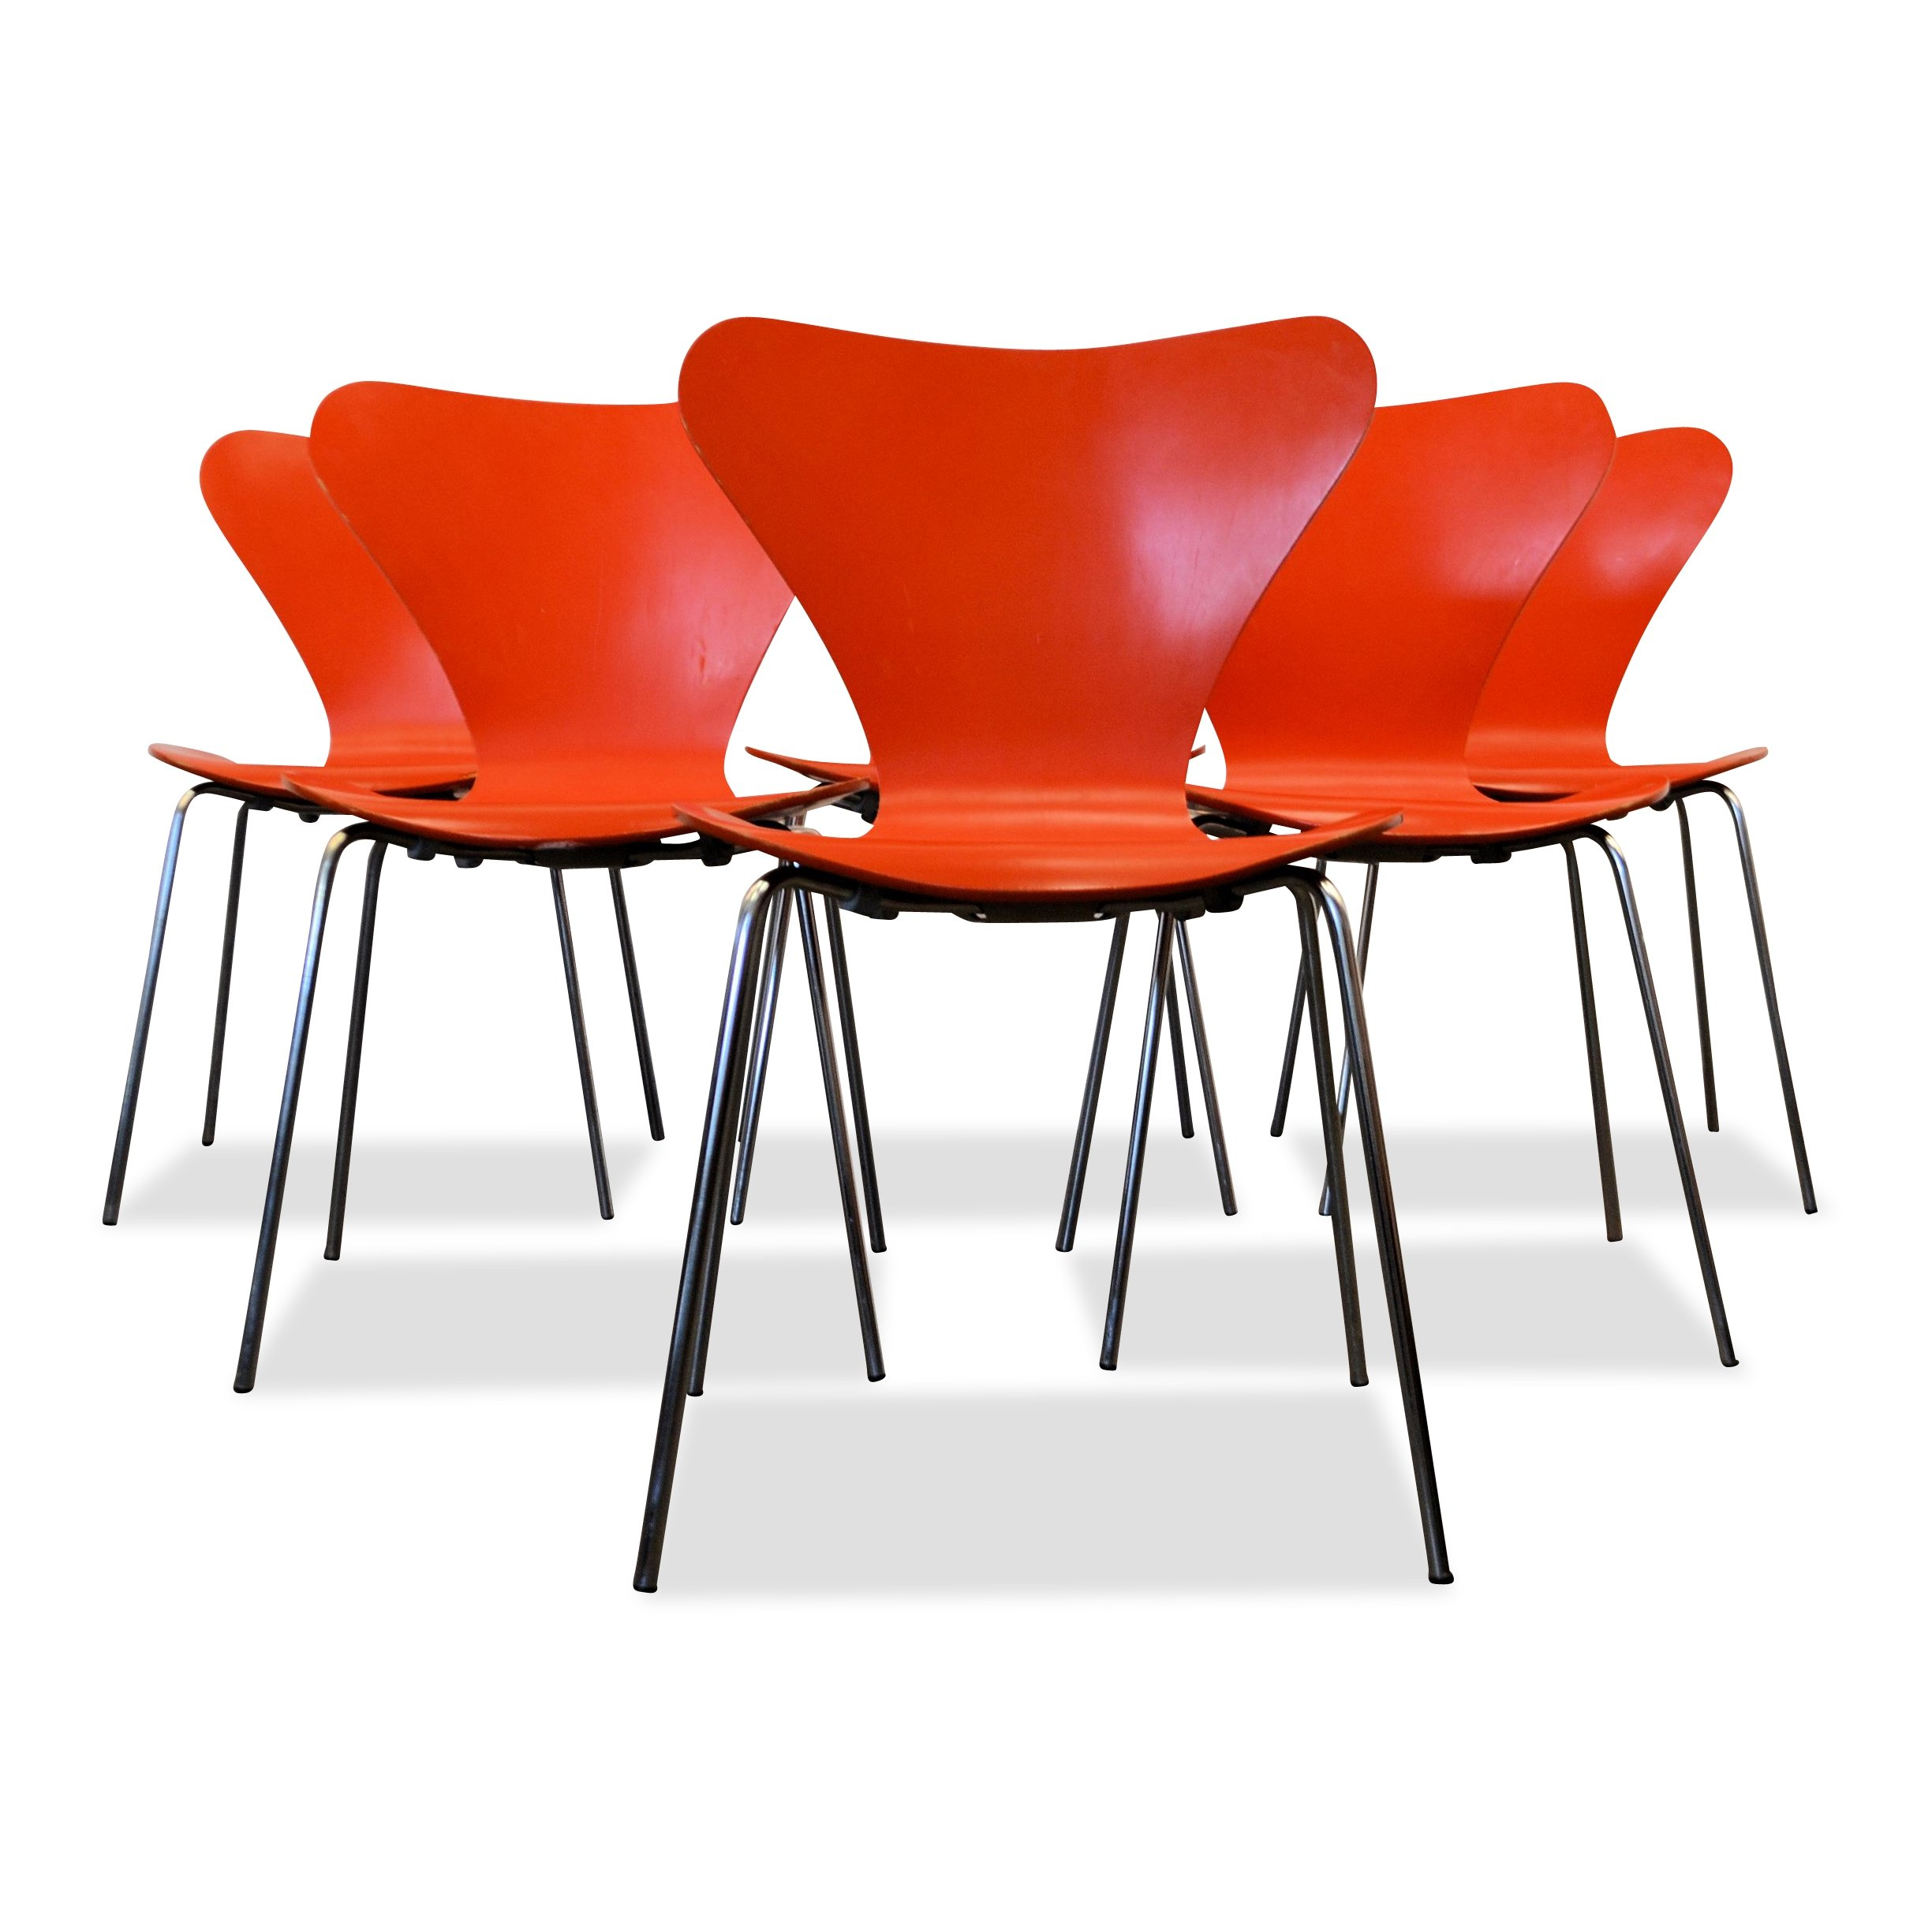 Arne Jacobsen Model 3107 Orange Dining Chairs